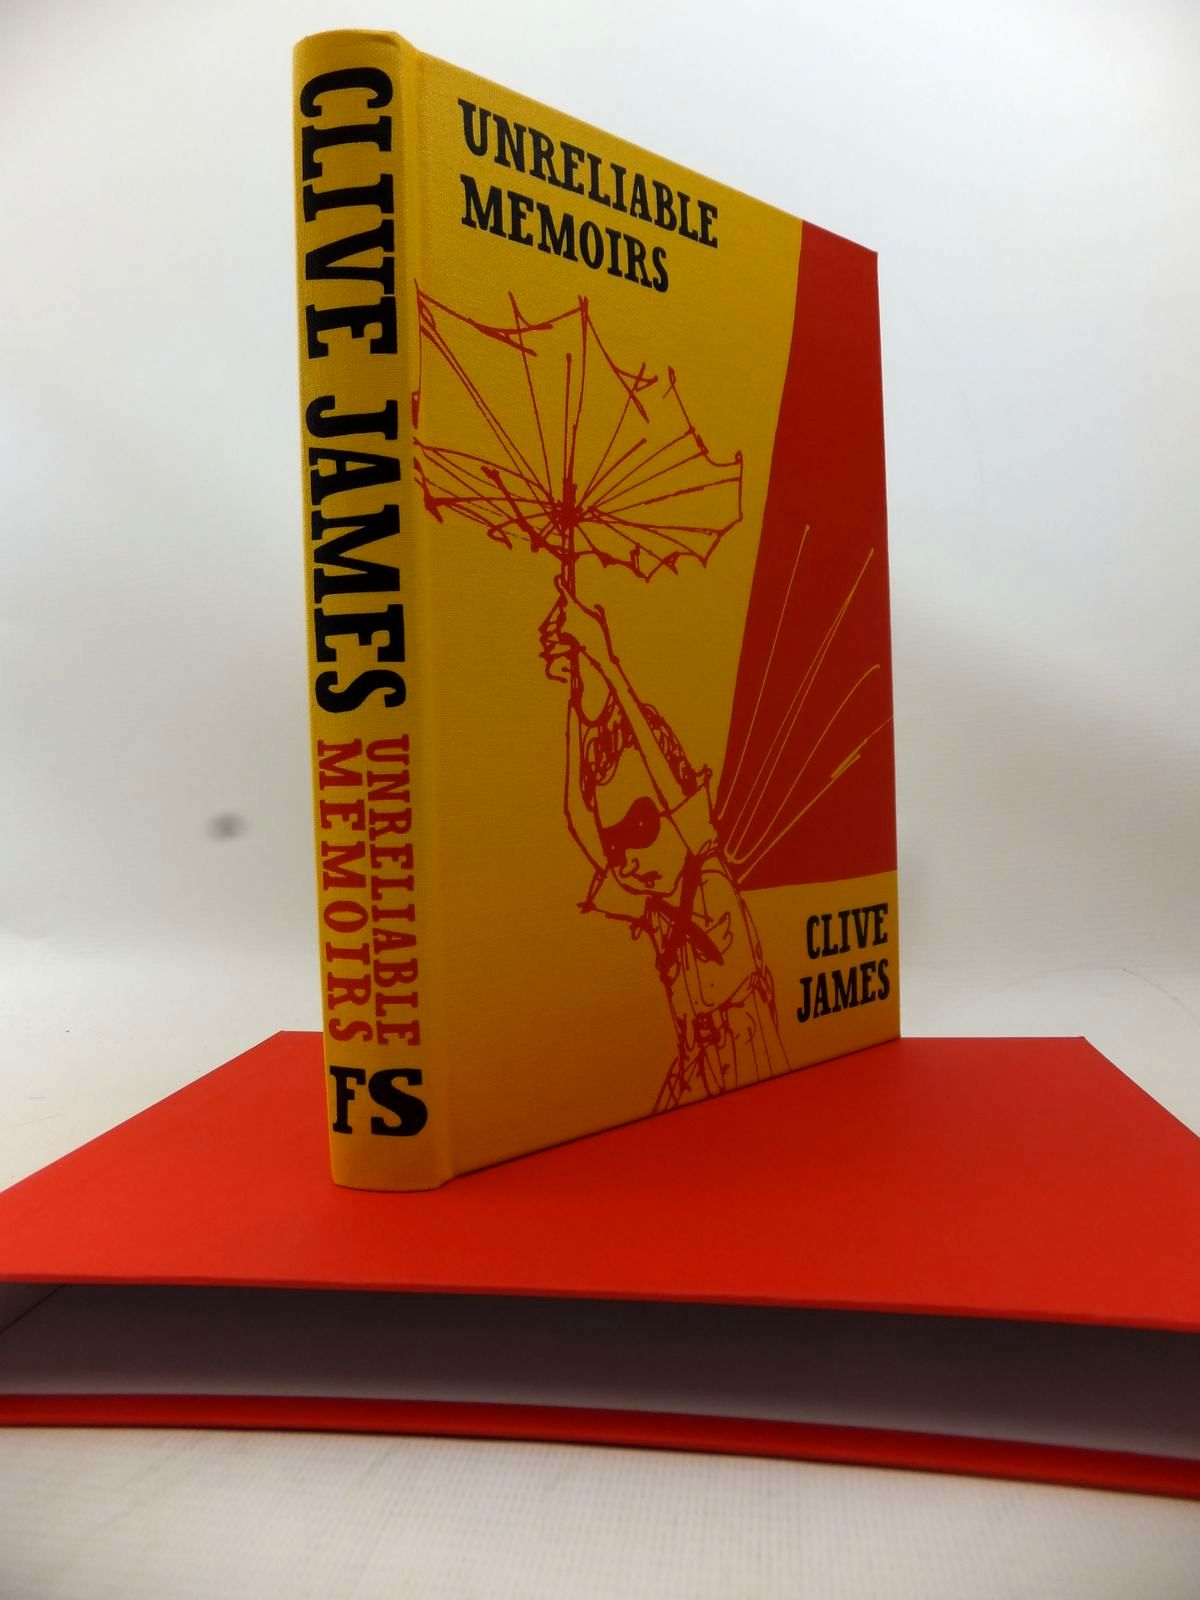 Photo of UNRELIABLE MEMOIRS written by James, Clive illustrated by Le Bec, Yann published by Folio Society (STOCK CODE: 1813900)  for sale by Stella & Rose's Books